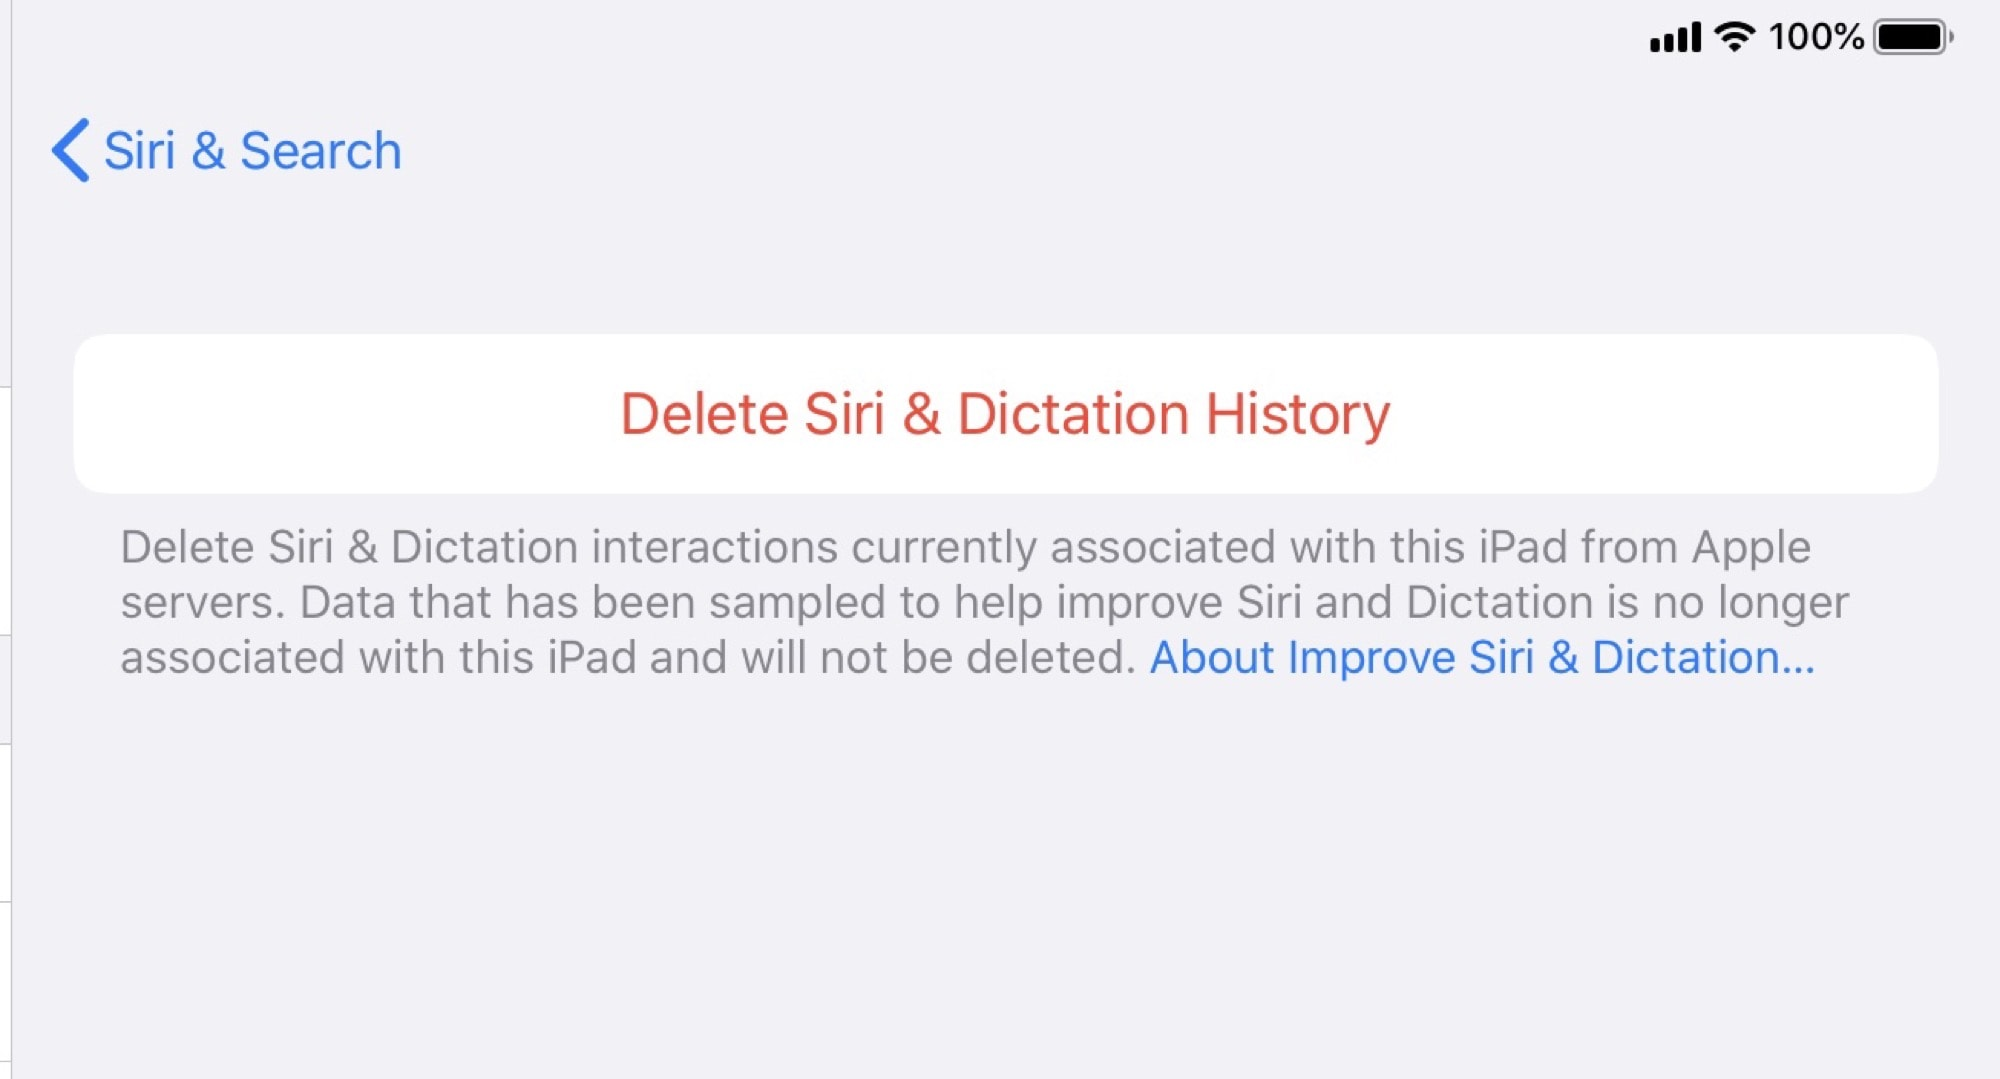 Delete any Siri data Apple has already collected.